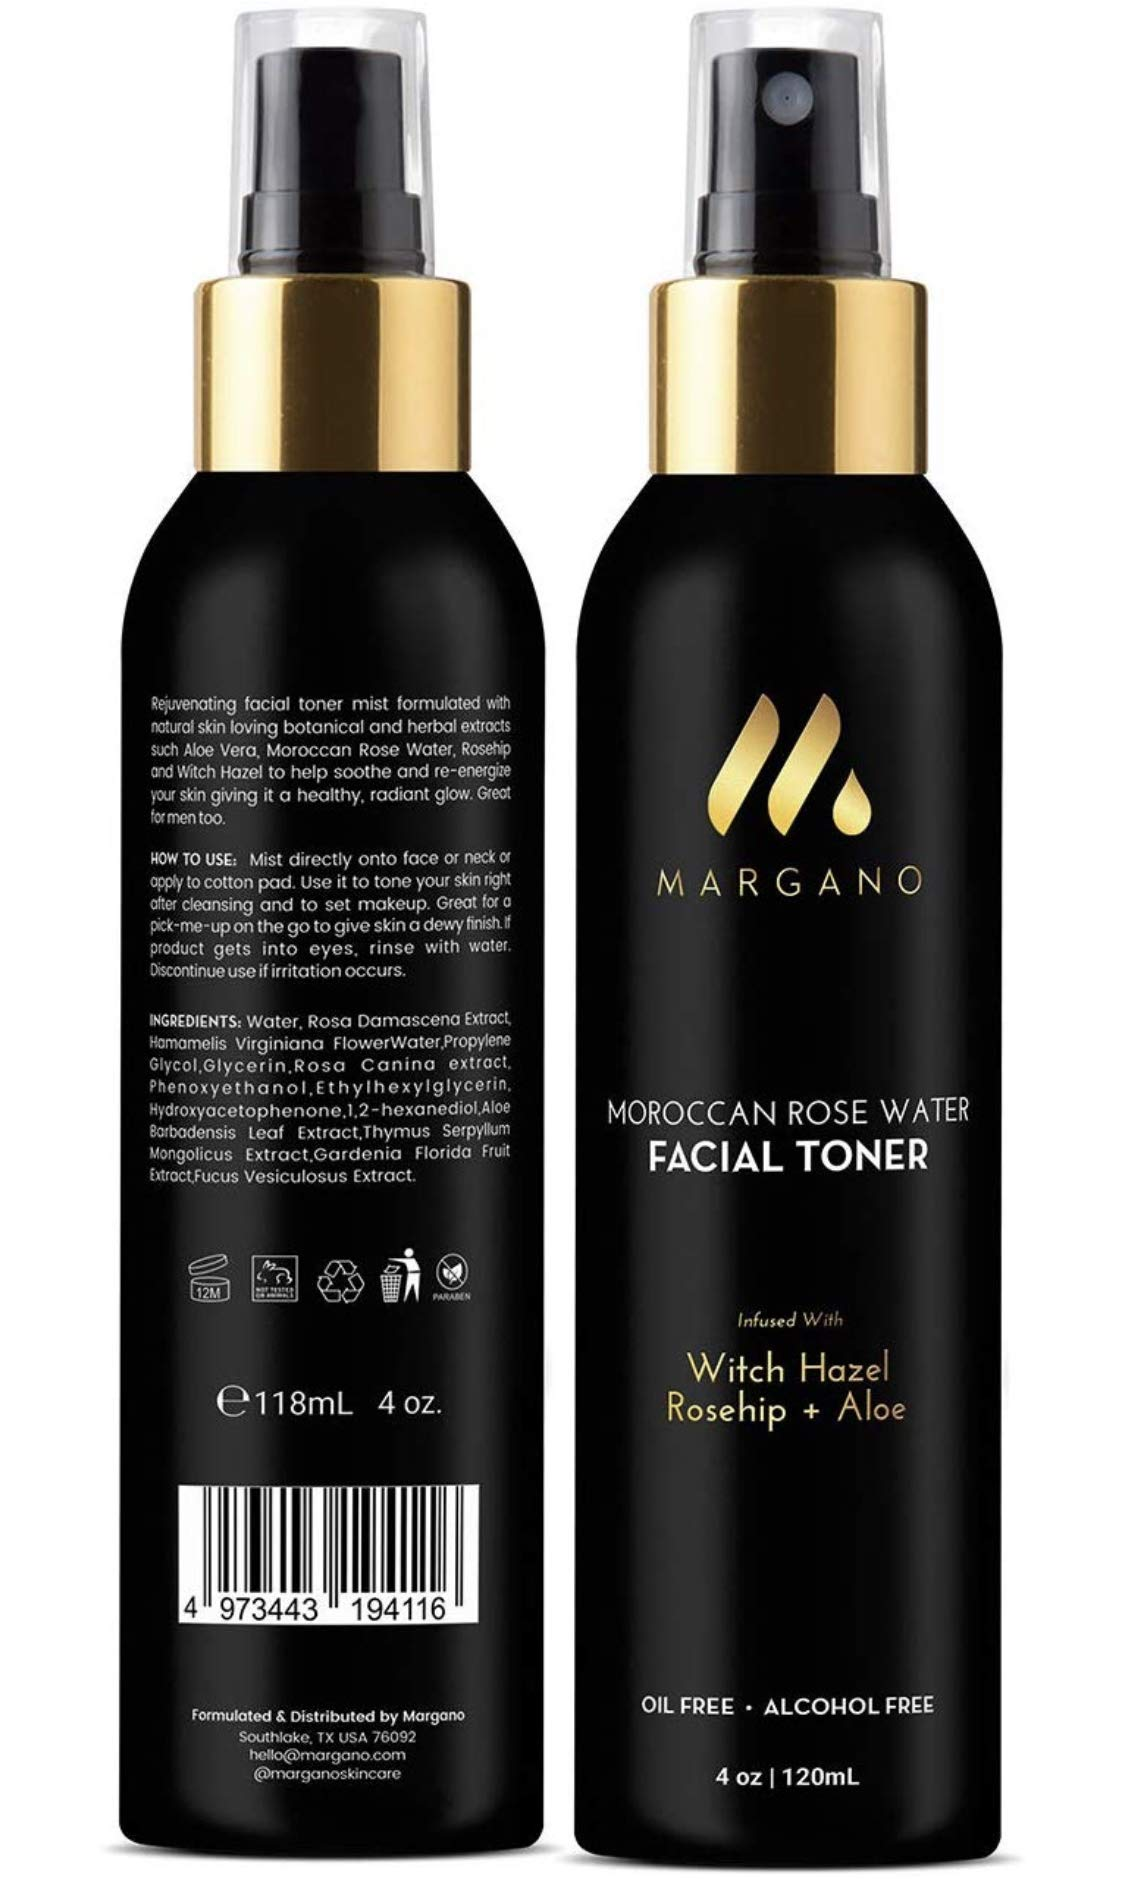 Natural Facial Toner w/Moroccan Rose Water, Witch Hazel, Aloe Vera and Rosehip | Restore pH, Tone, Sooth, Moisturize, Set Makeup| All Skin Types. Alcohol Free. Oil Free, 4oz by MARGANO